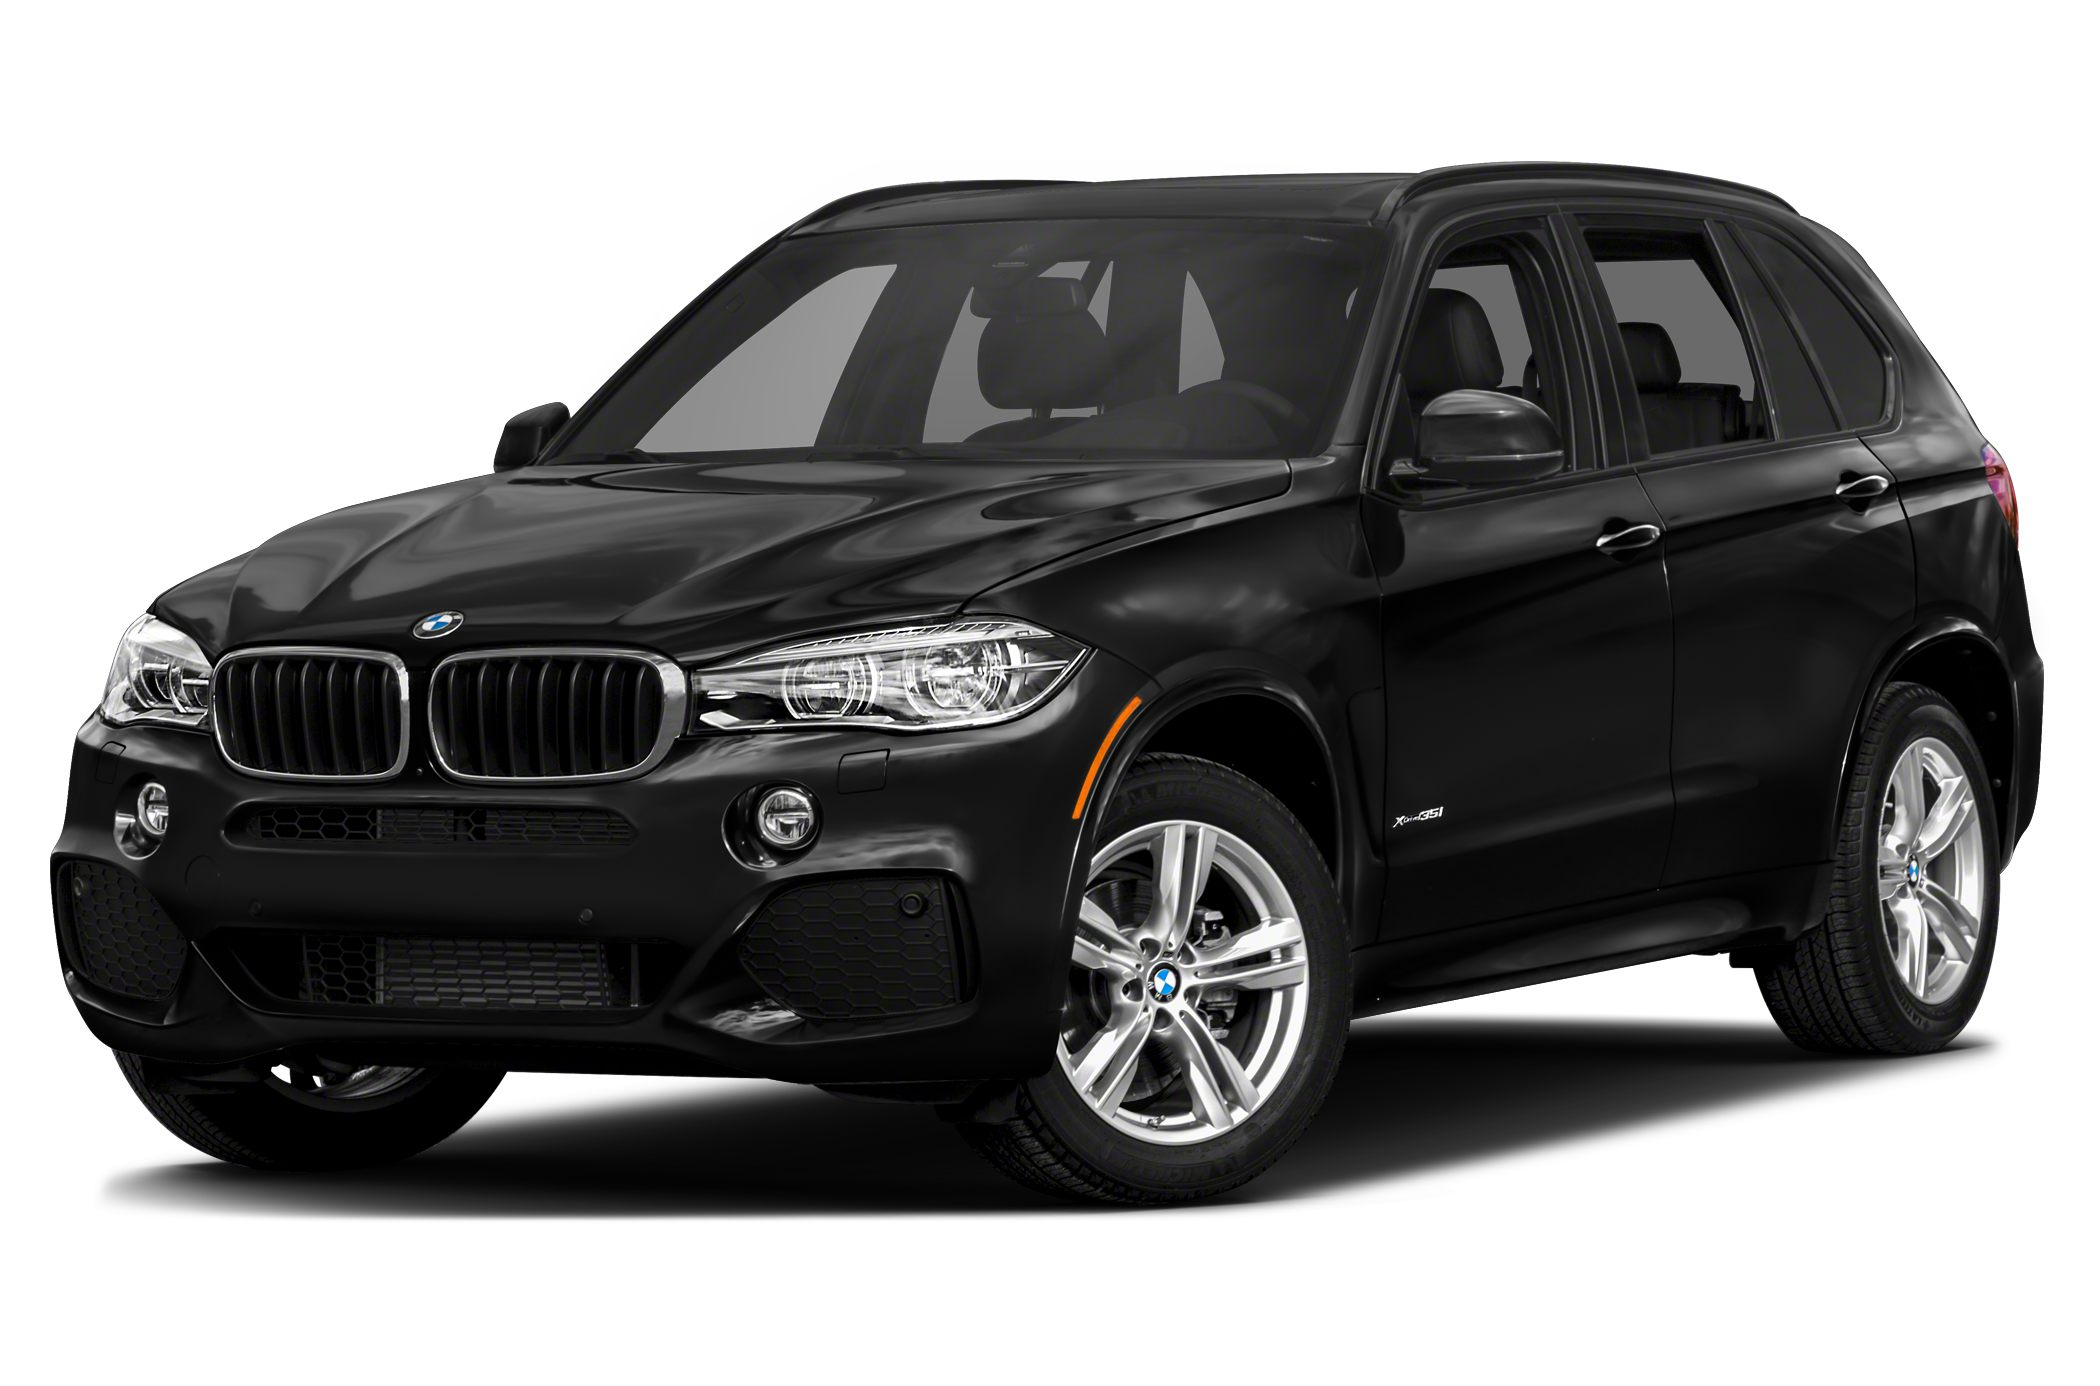 2015 BMW X5 xDrive35d Proud to be named 2016 DEALER of the YEAR in the used vehicle category for M